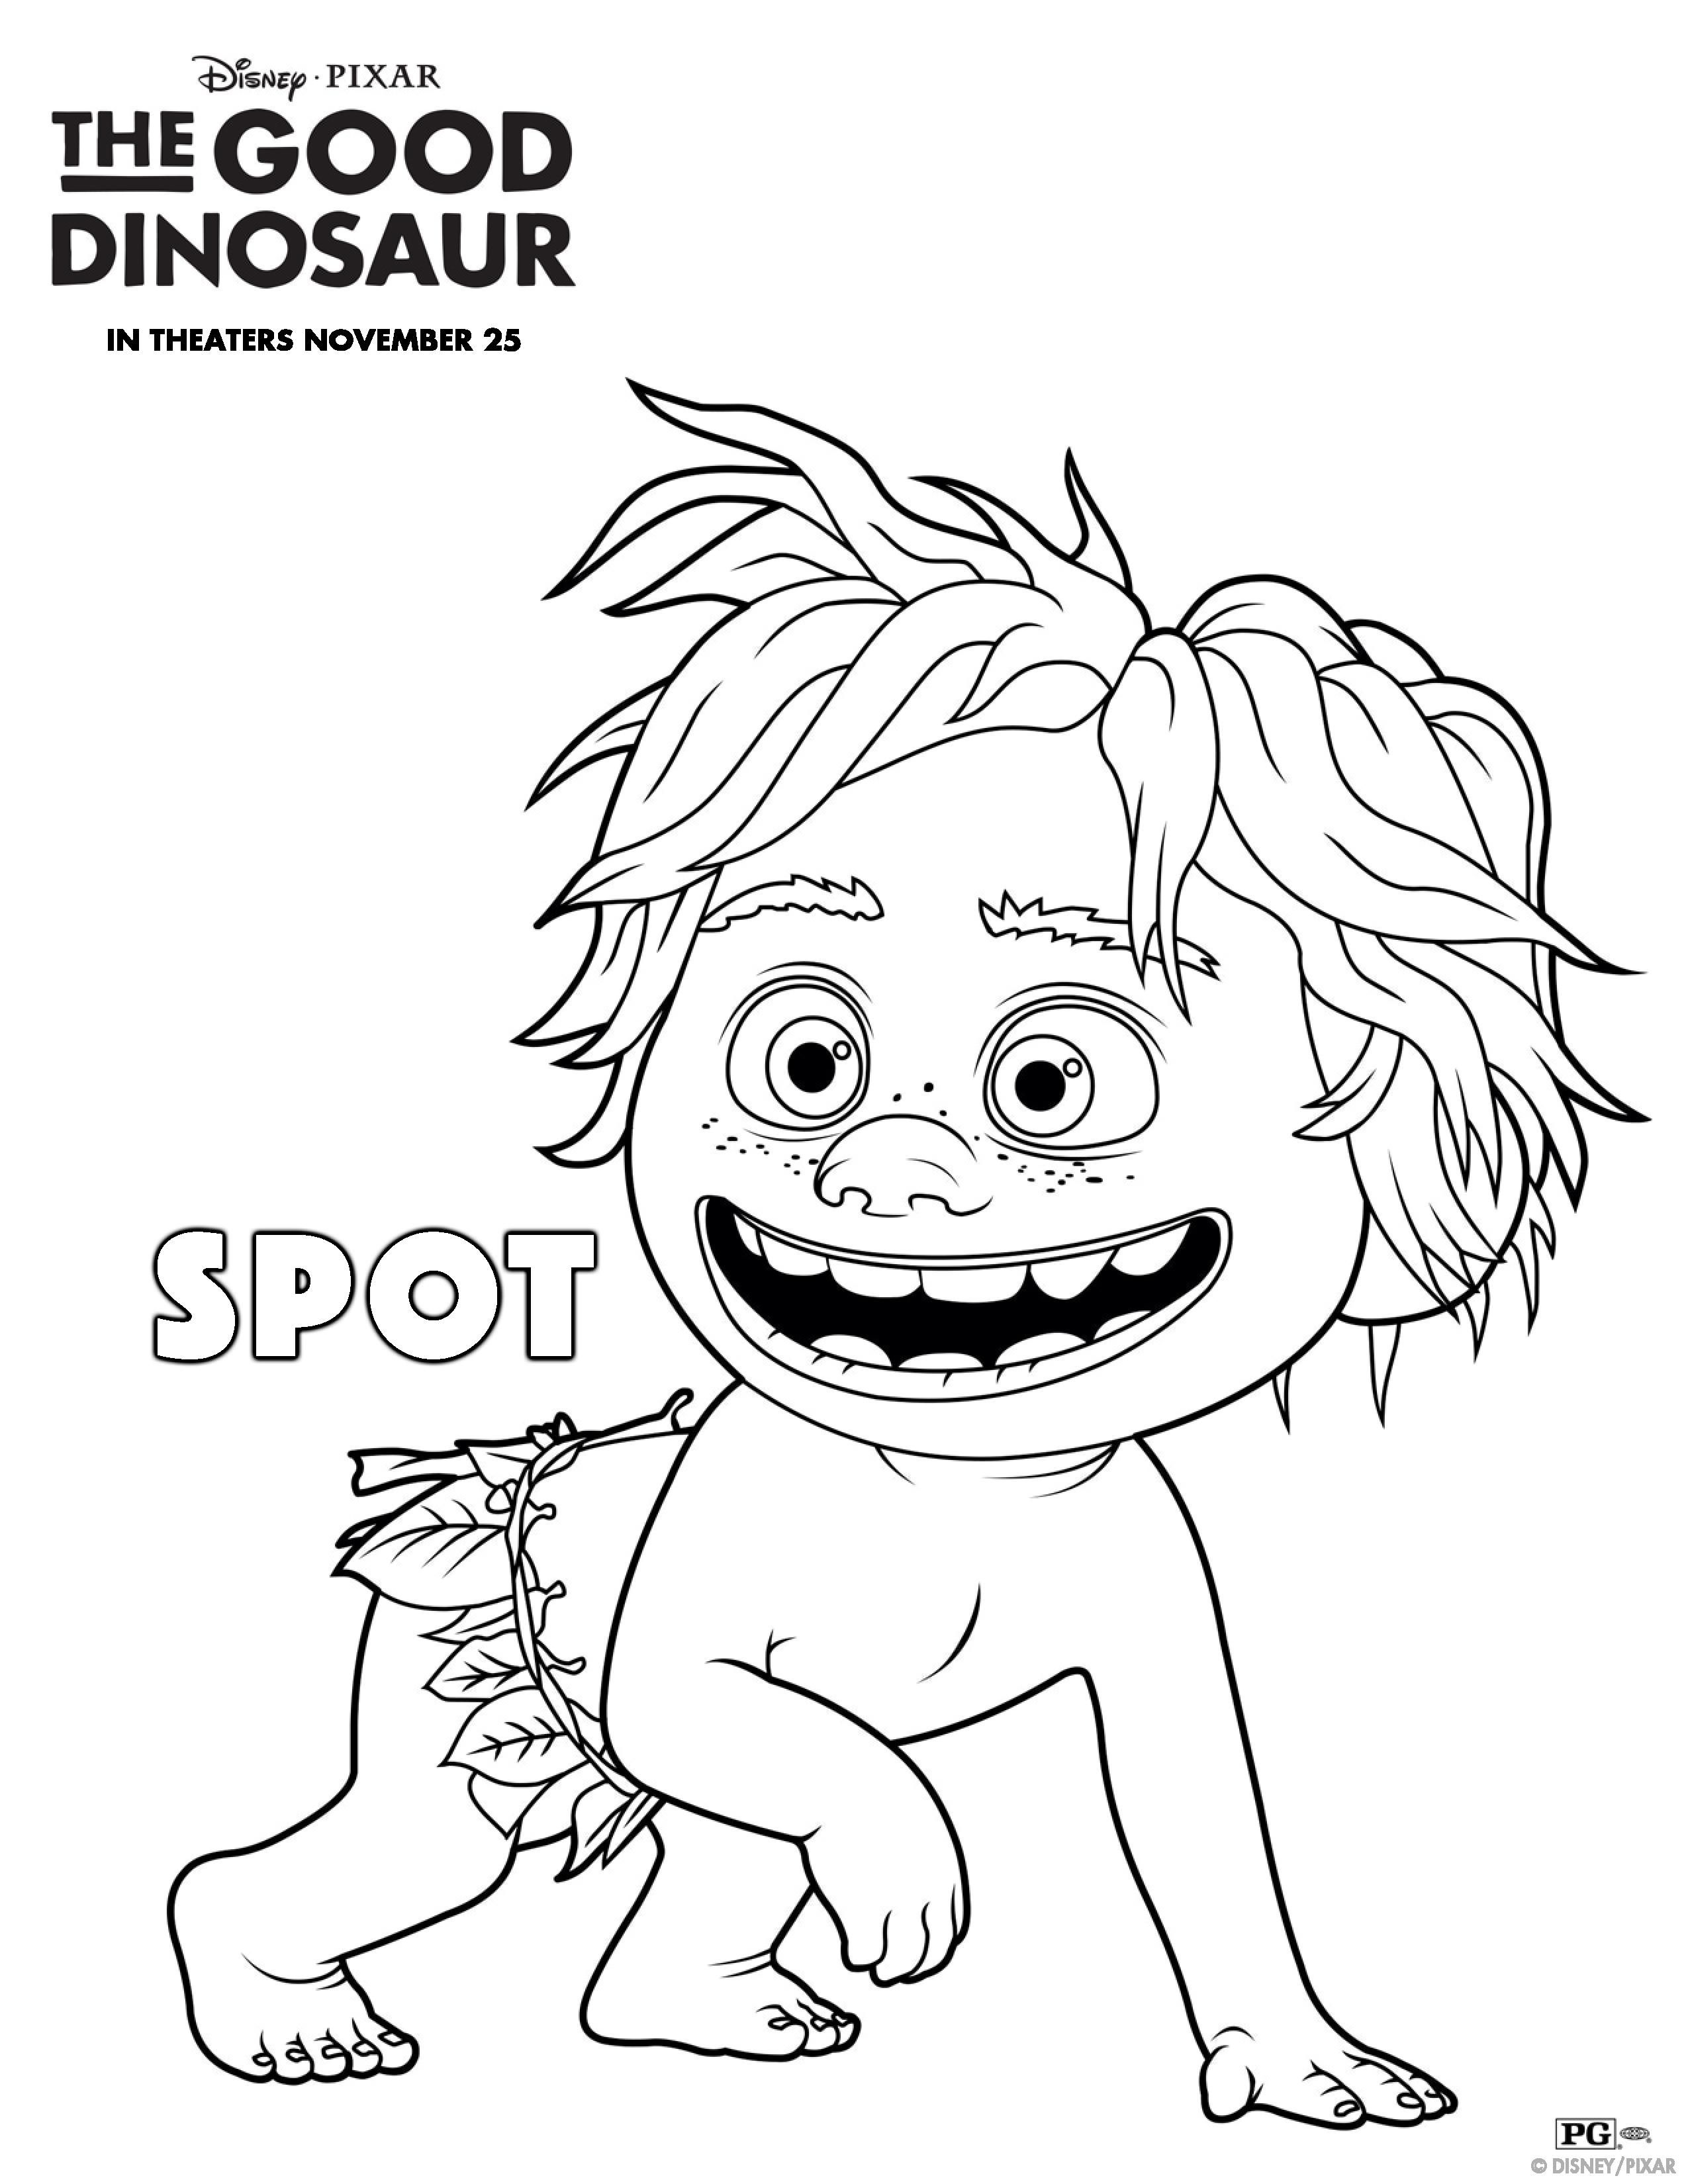 Cartoon dinosaur coloring pages free - The Good Dinosaur Spot Coloring Page